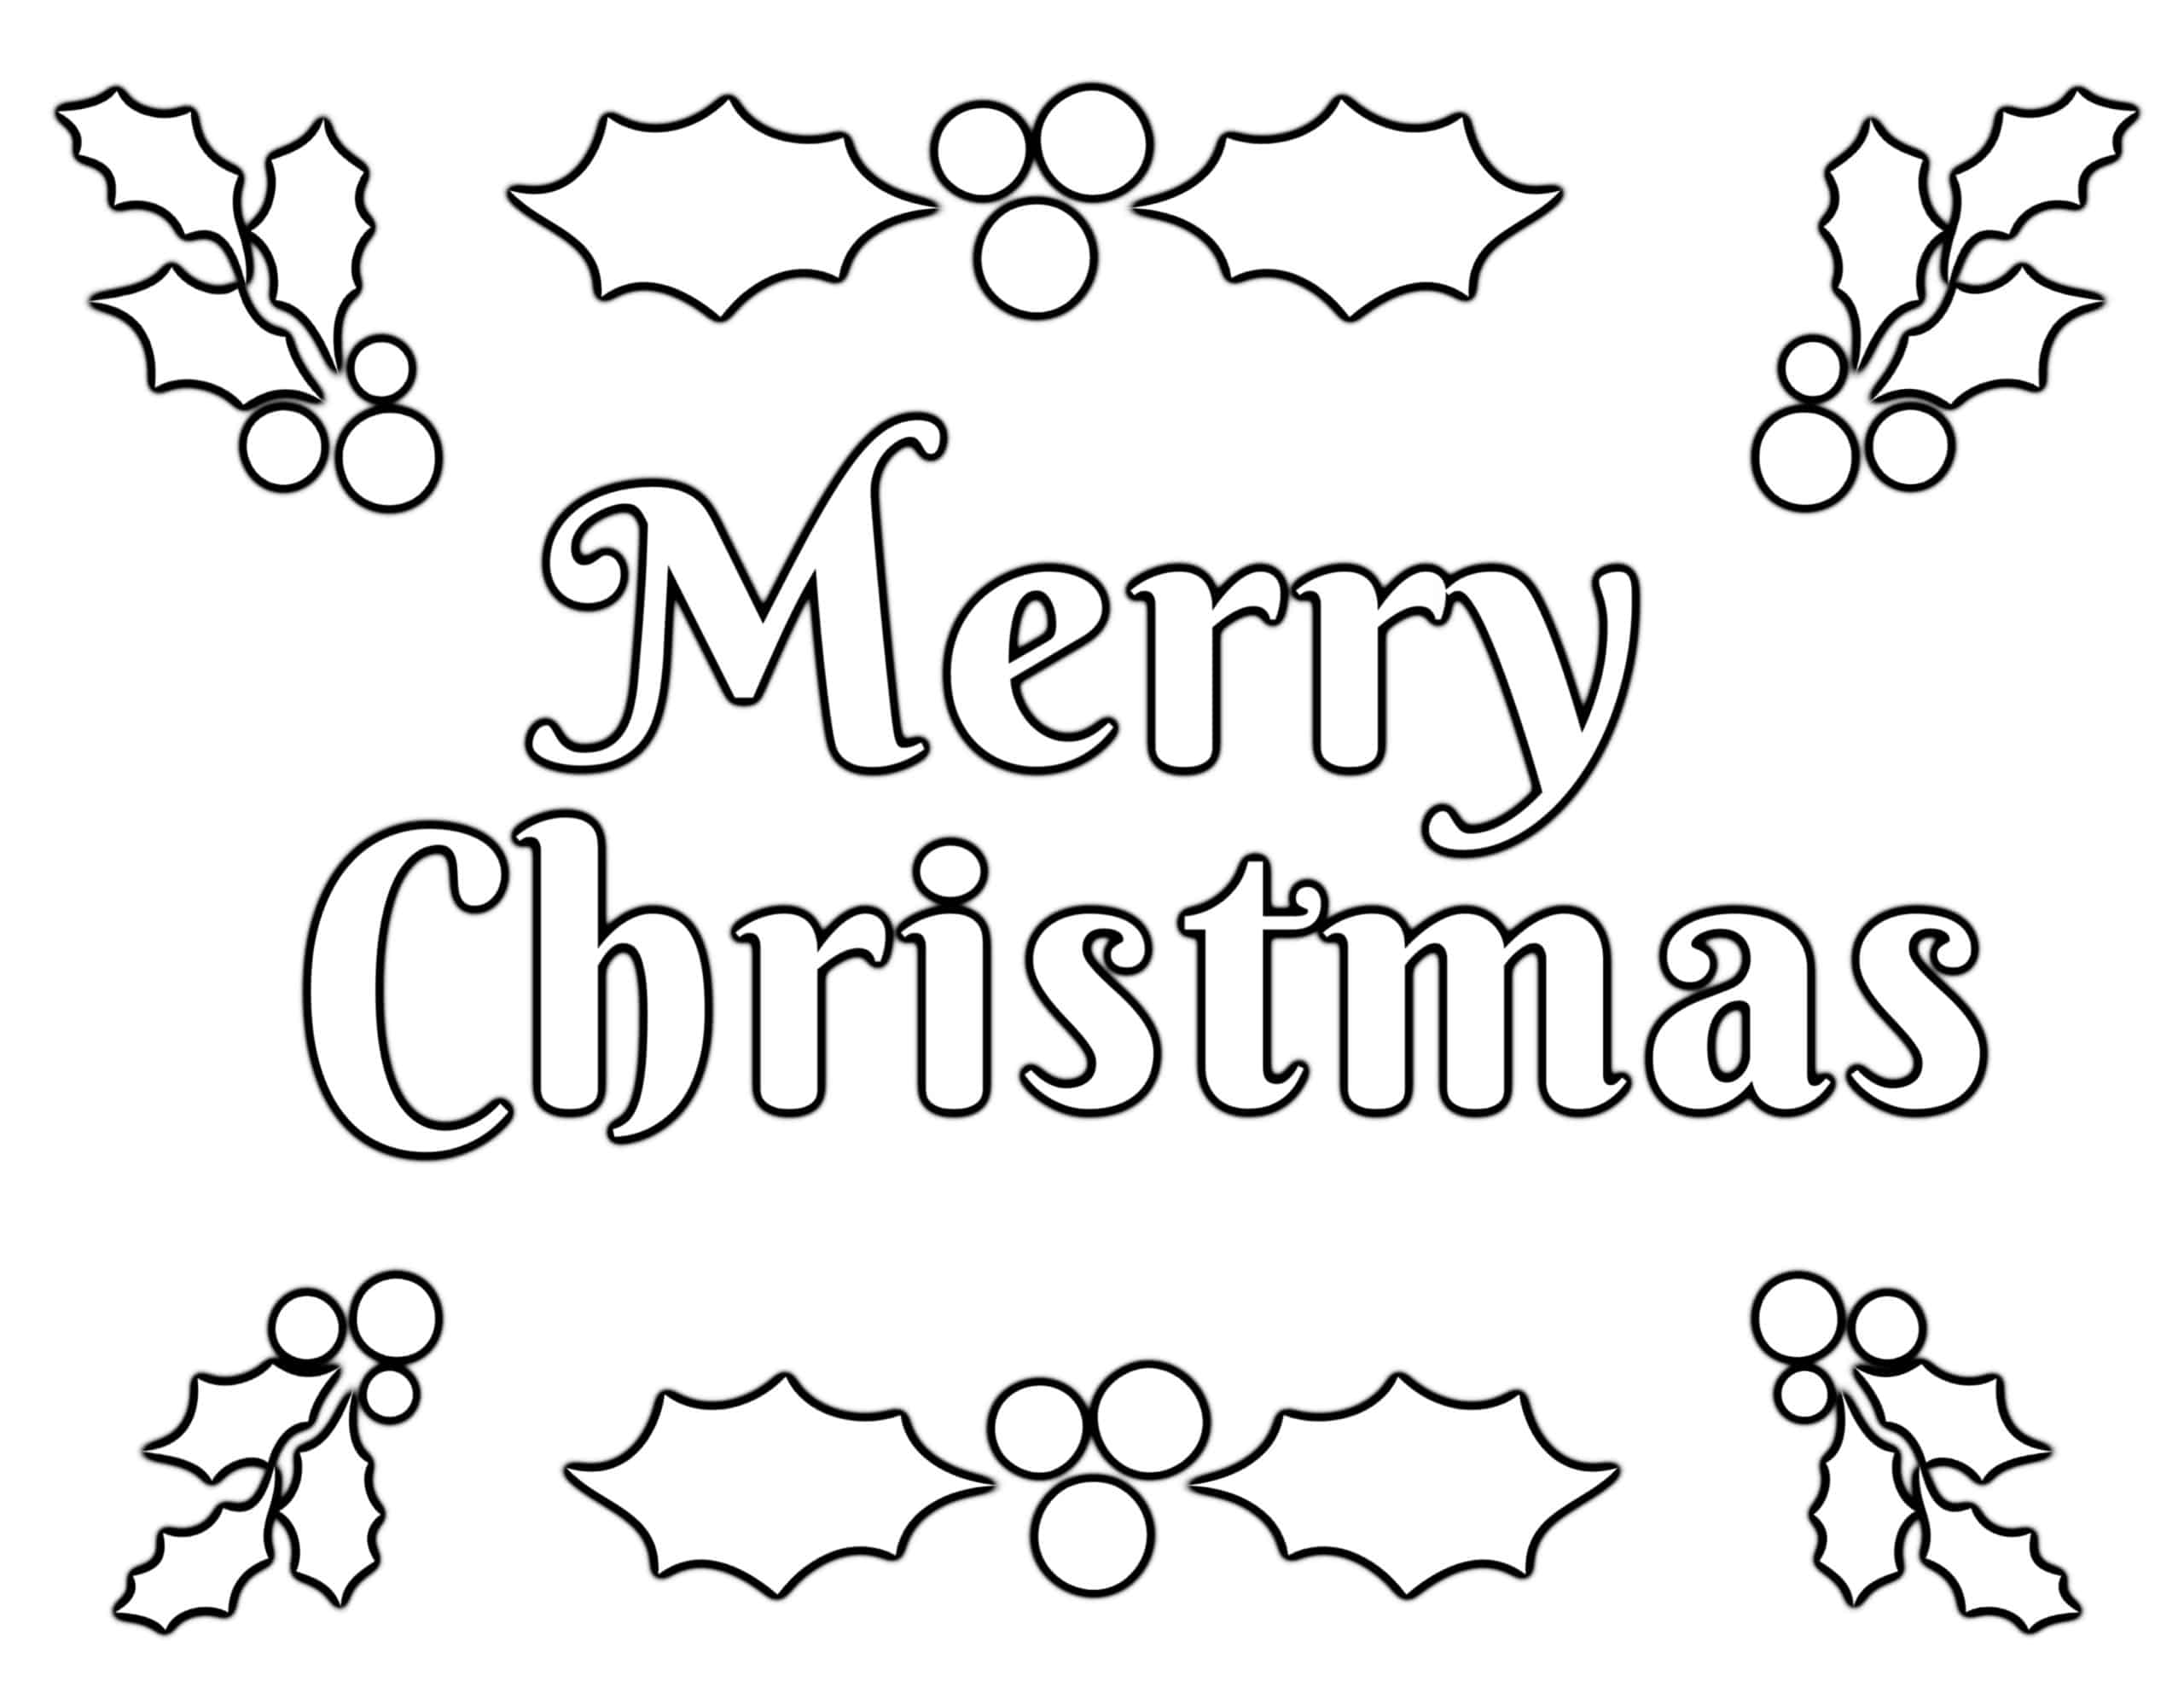 christmas coloring pages for kids 100 free easy printable pdf christmas coloring pages for kids 100